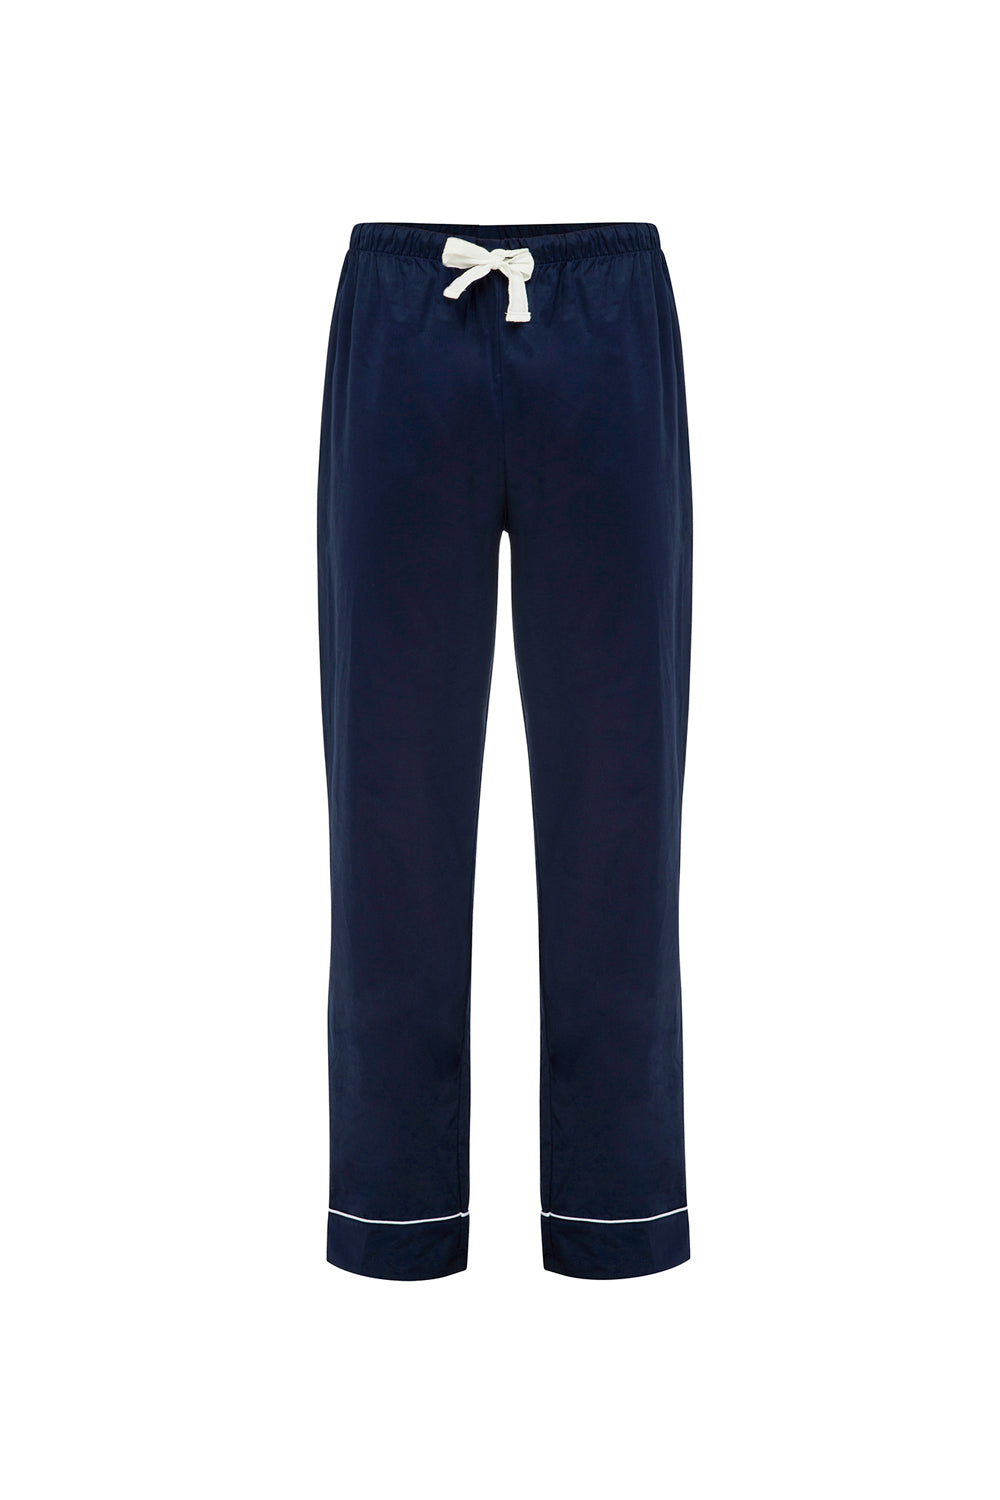 Amour Navy Mens Pants